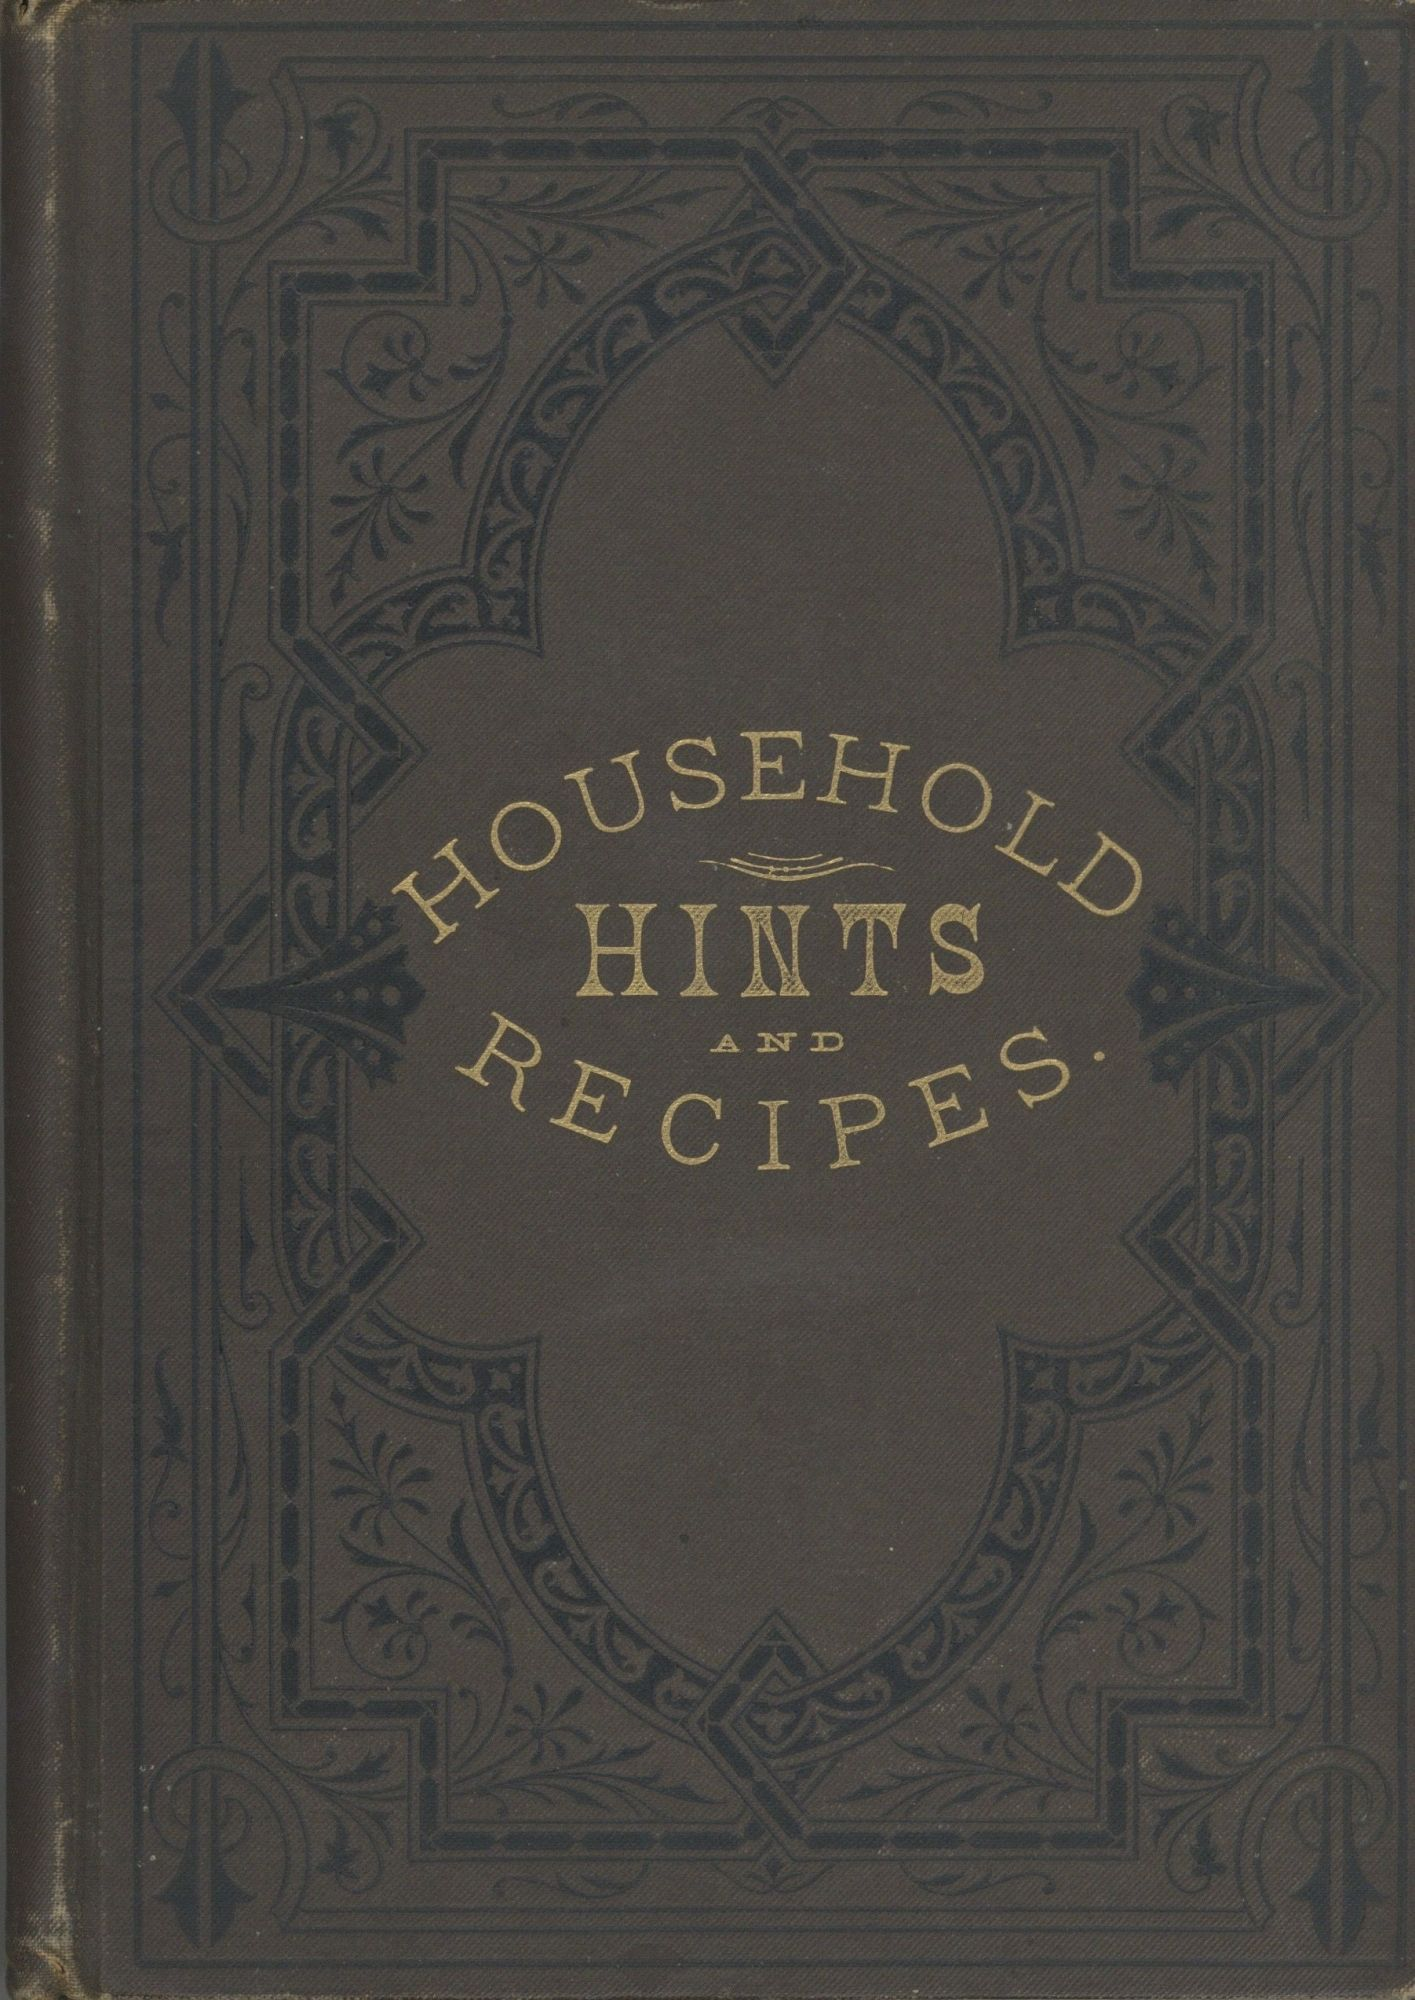 Household Hints and Recipes. Daisy Eyebright, Henry T. Williams, S. O. Johnson, Sophia Orne.